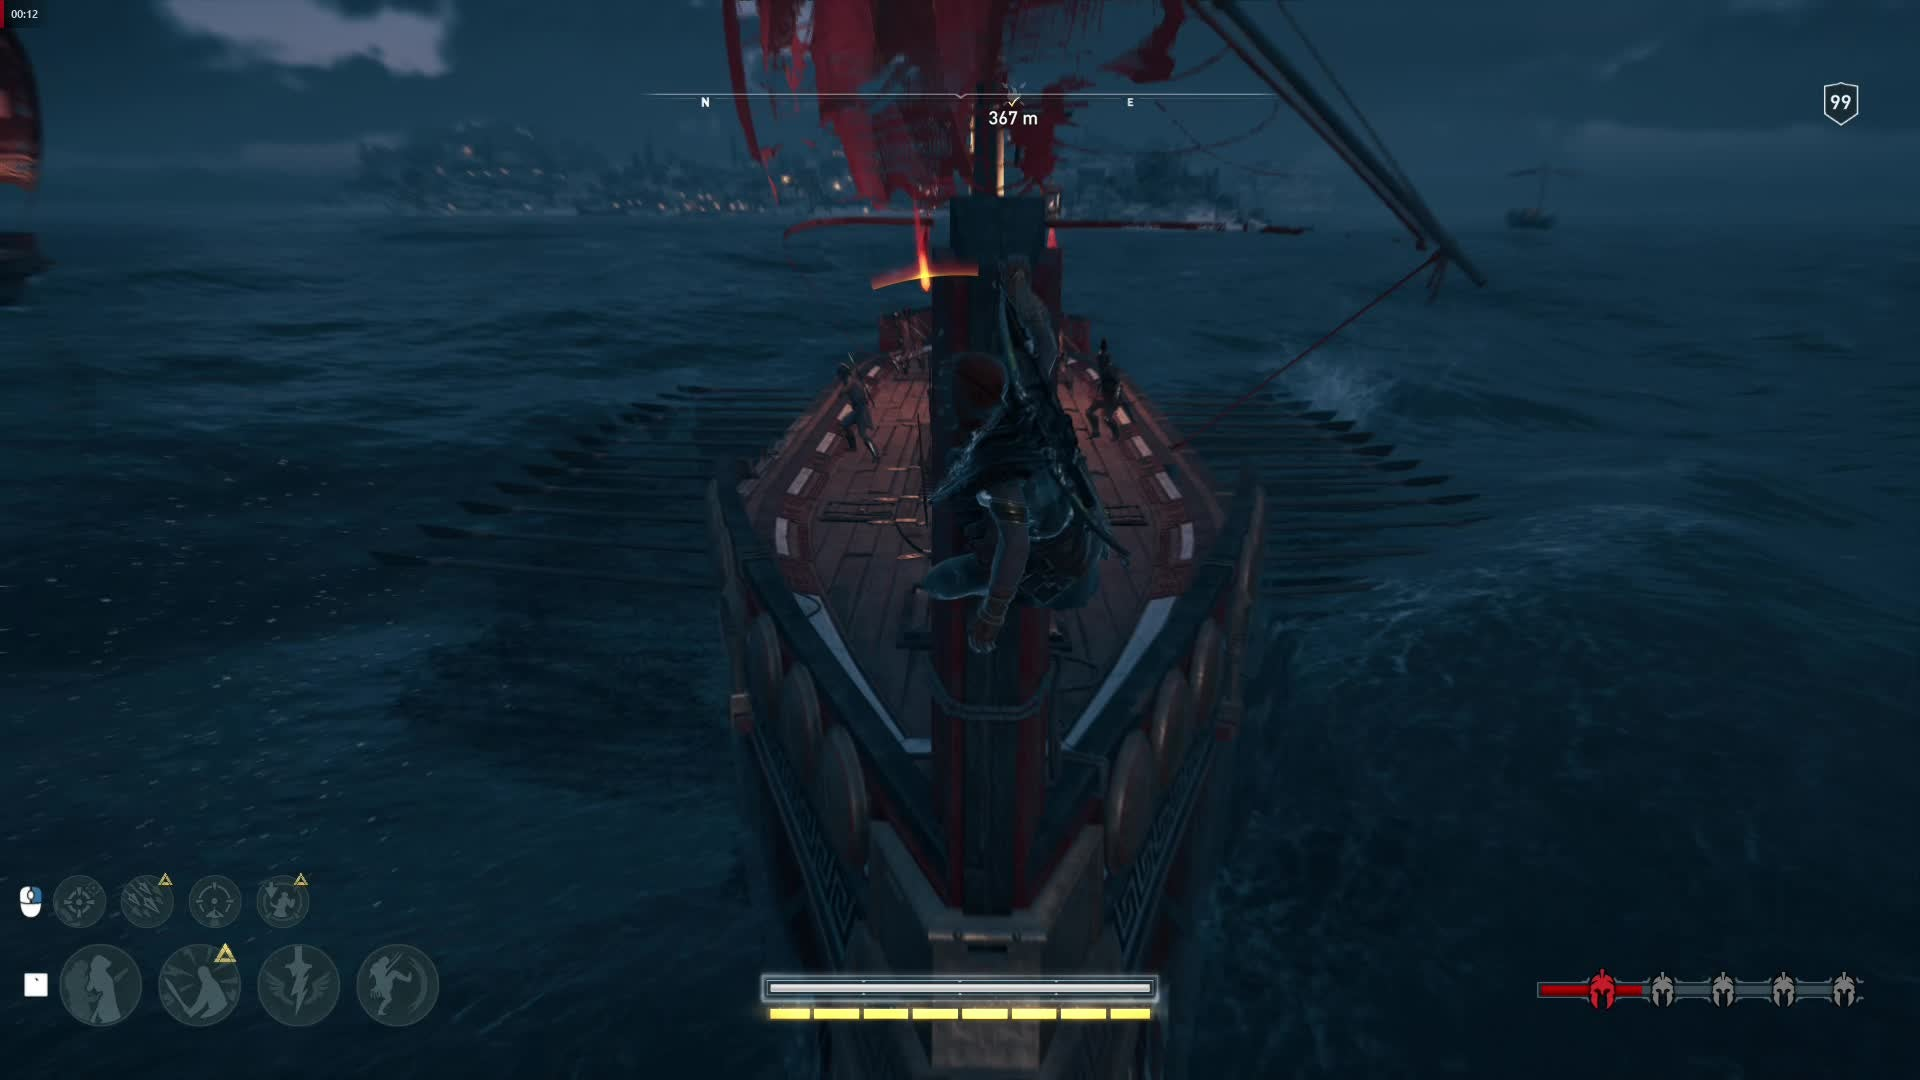 Assassin's Creed: General - Best way to board a ship :D video cover image 0